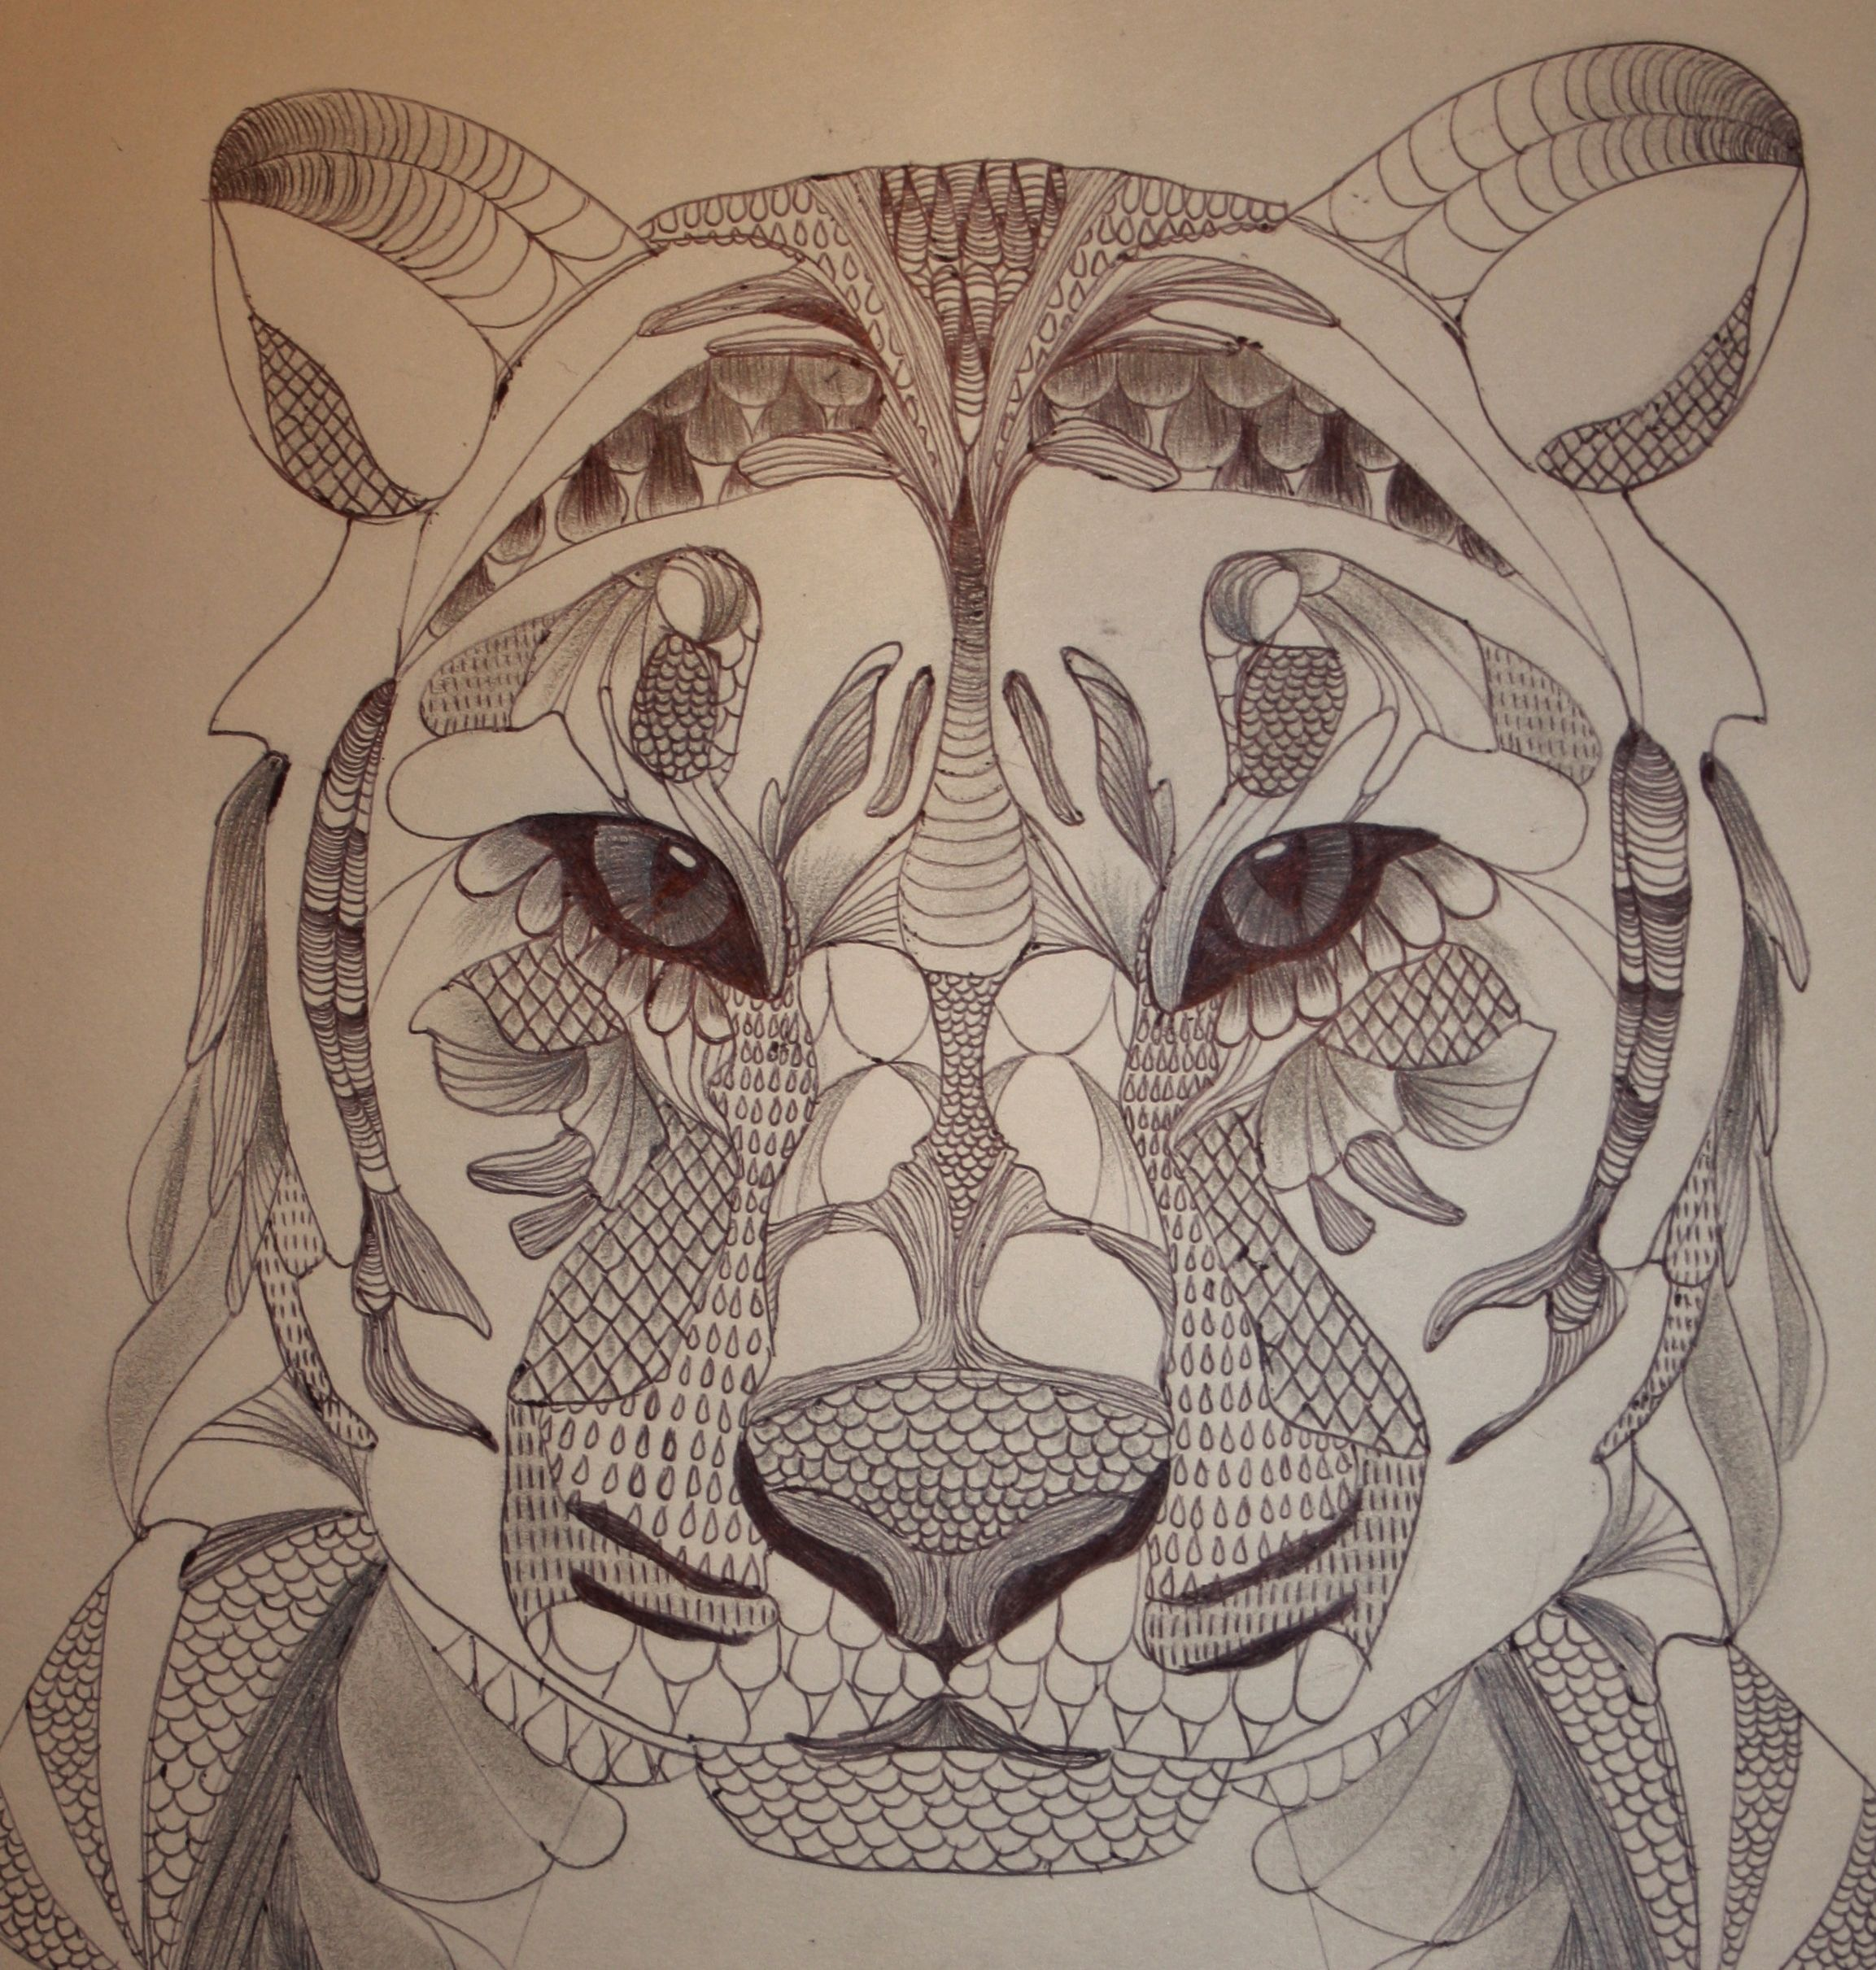 Lion - created with ballpoint pen and pencil